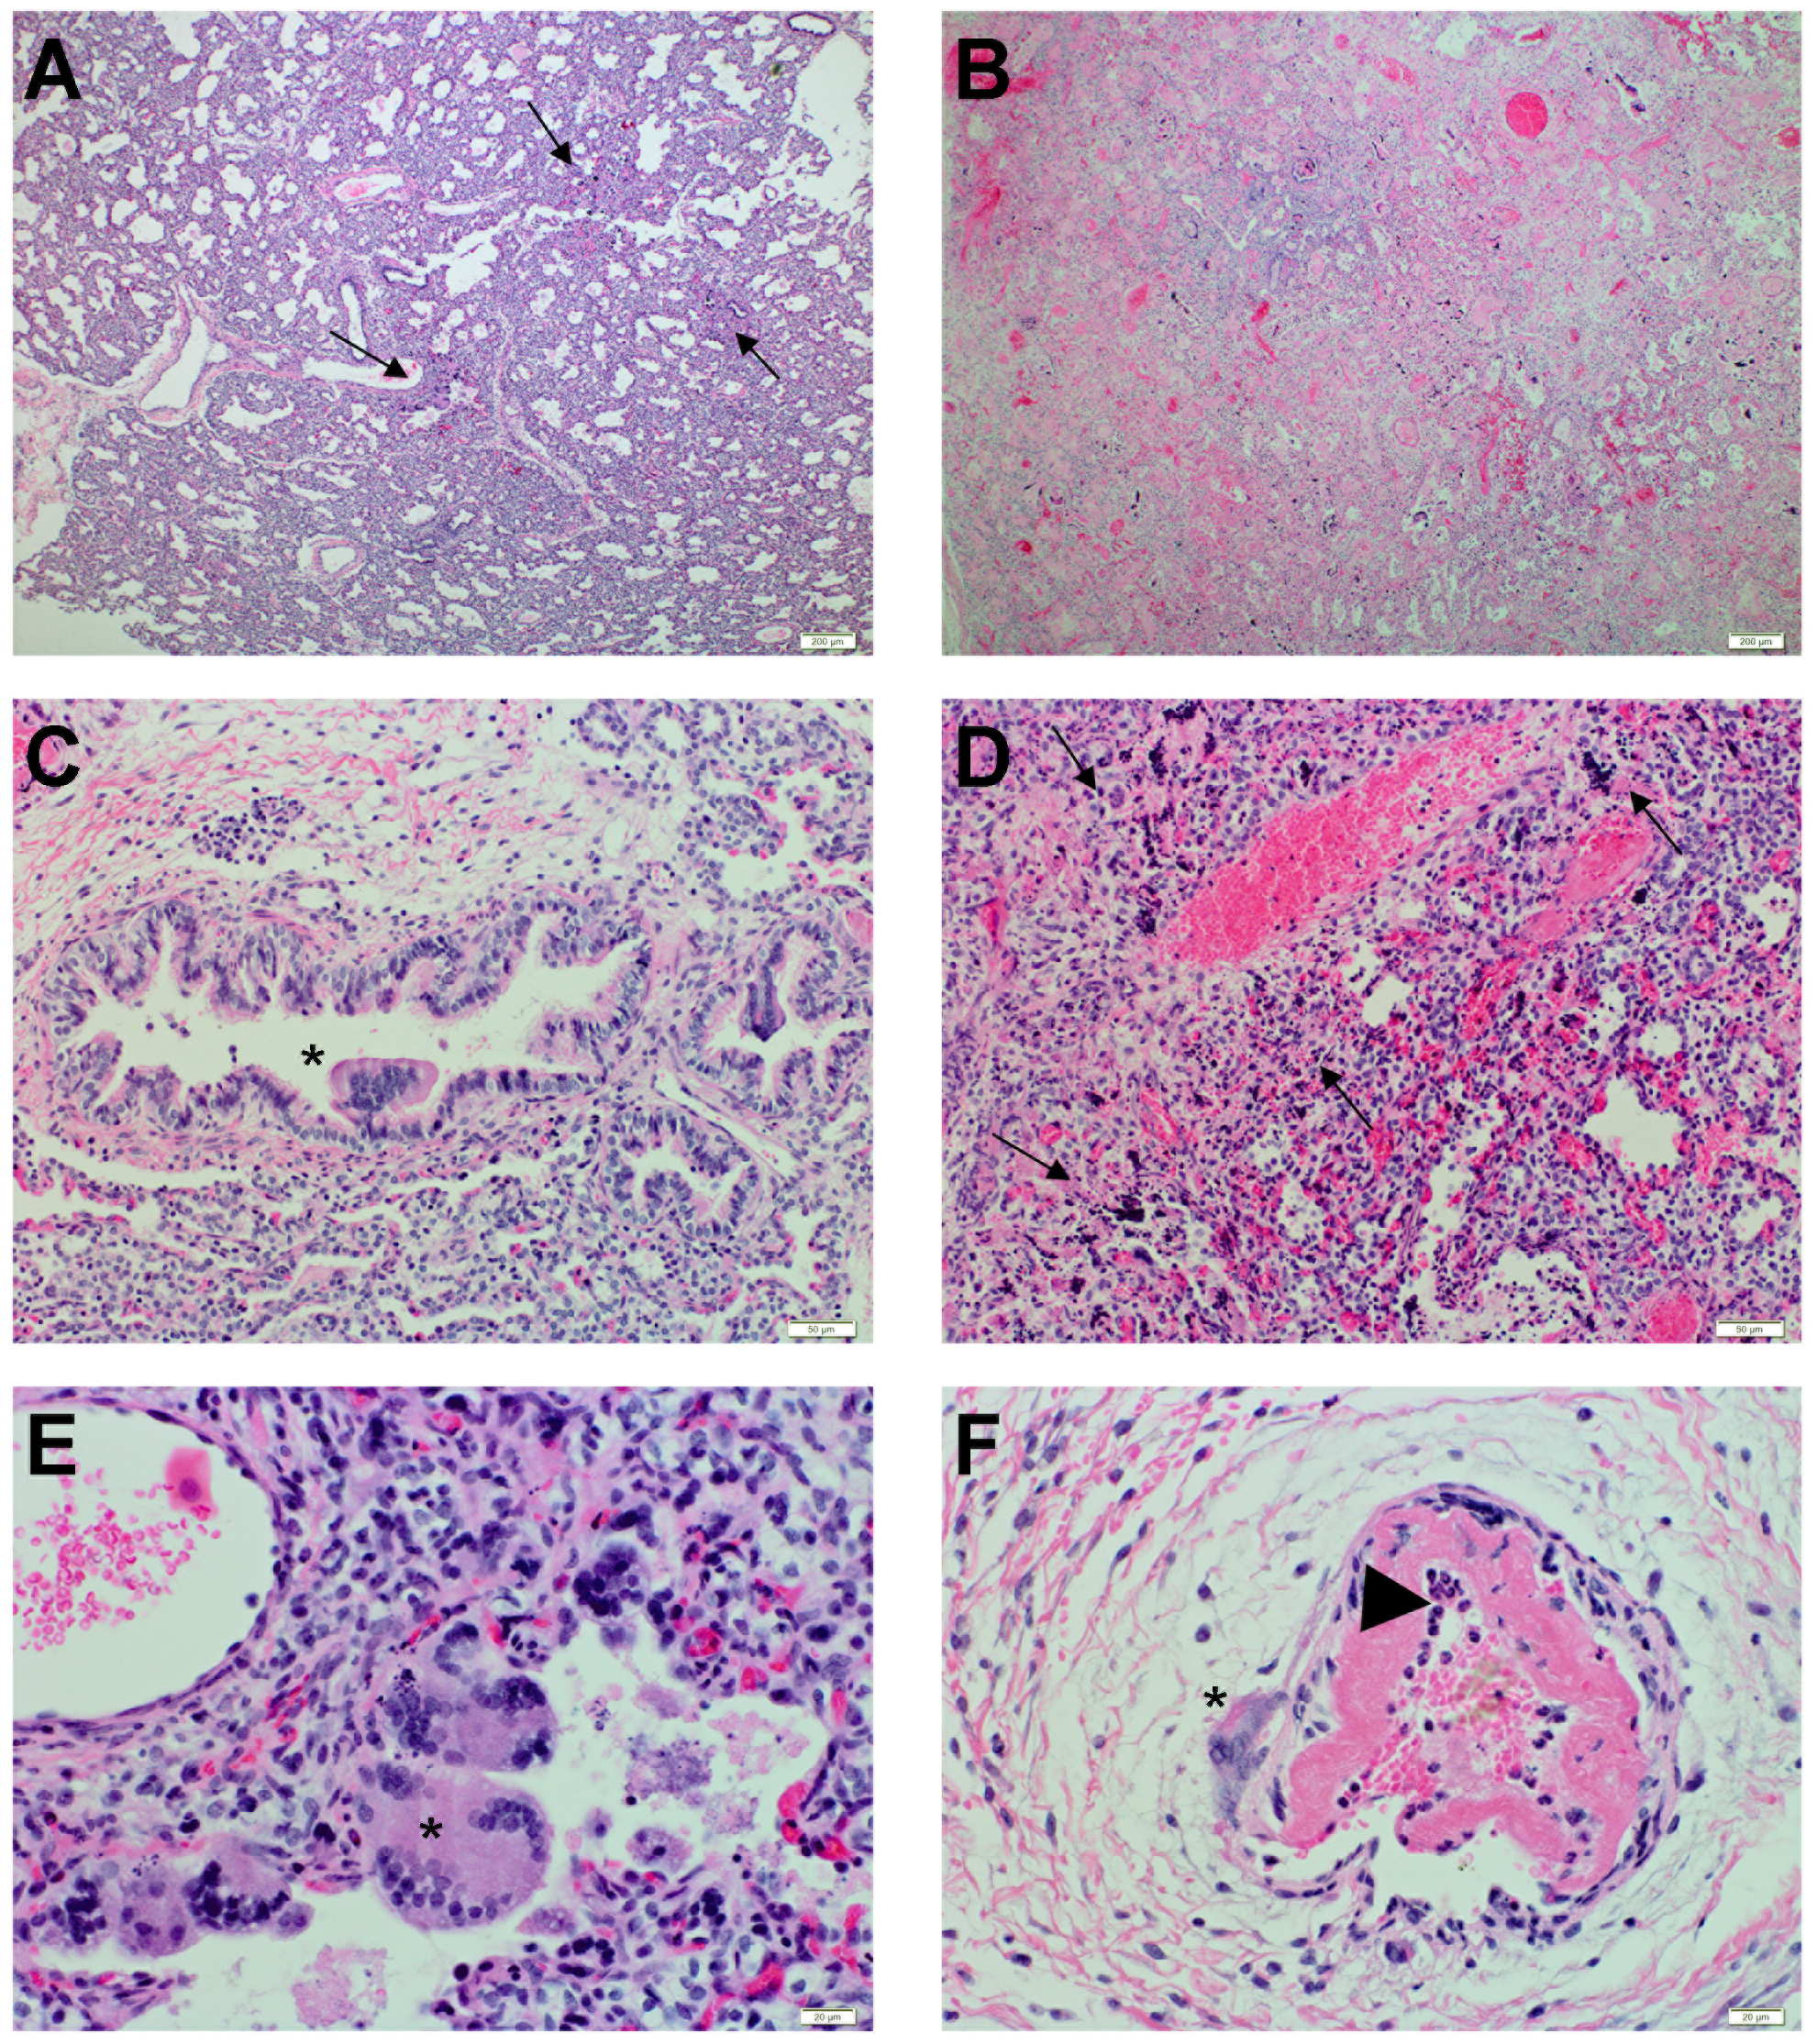 Histopathological changes during Nipah virus infection in human lung xenografts.